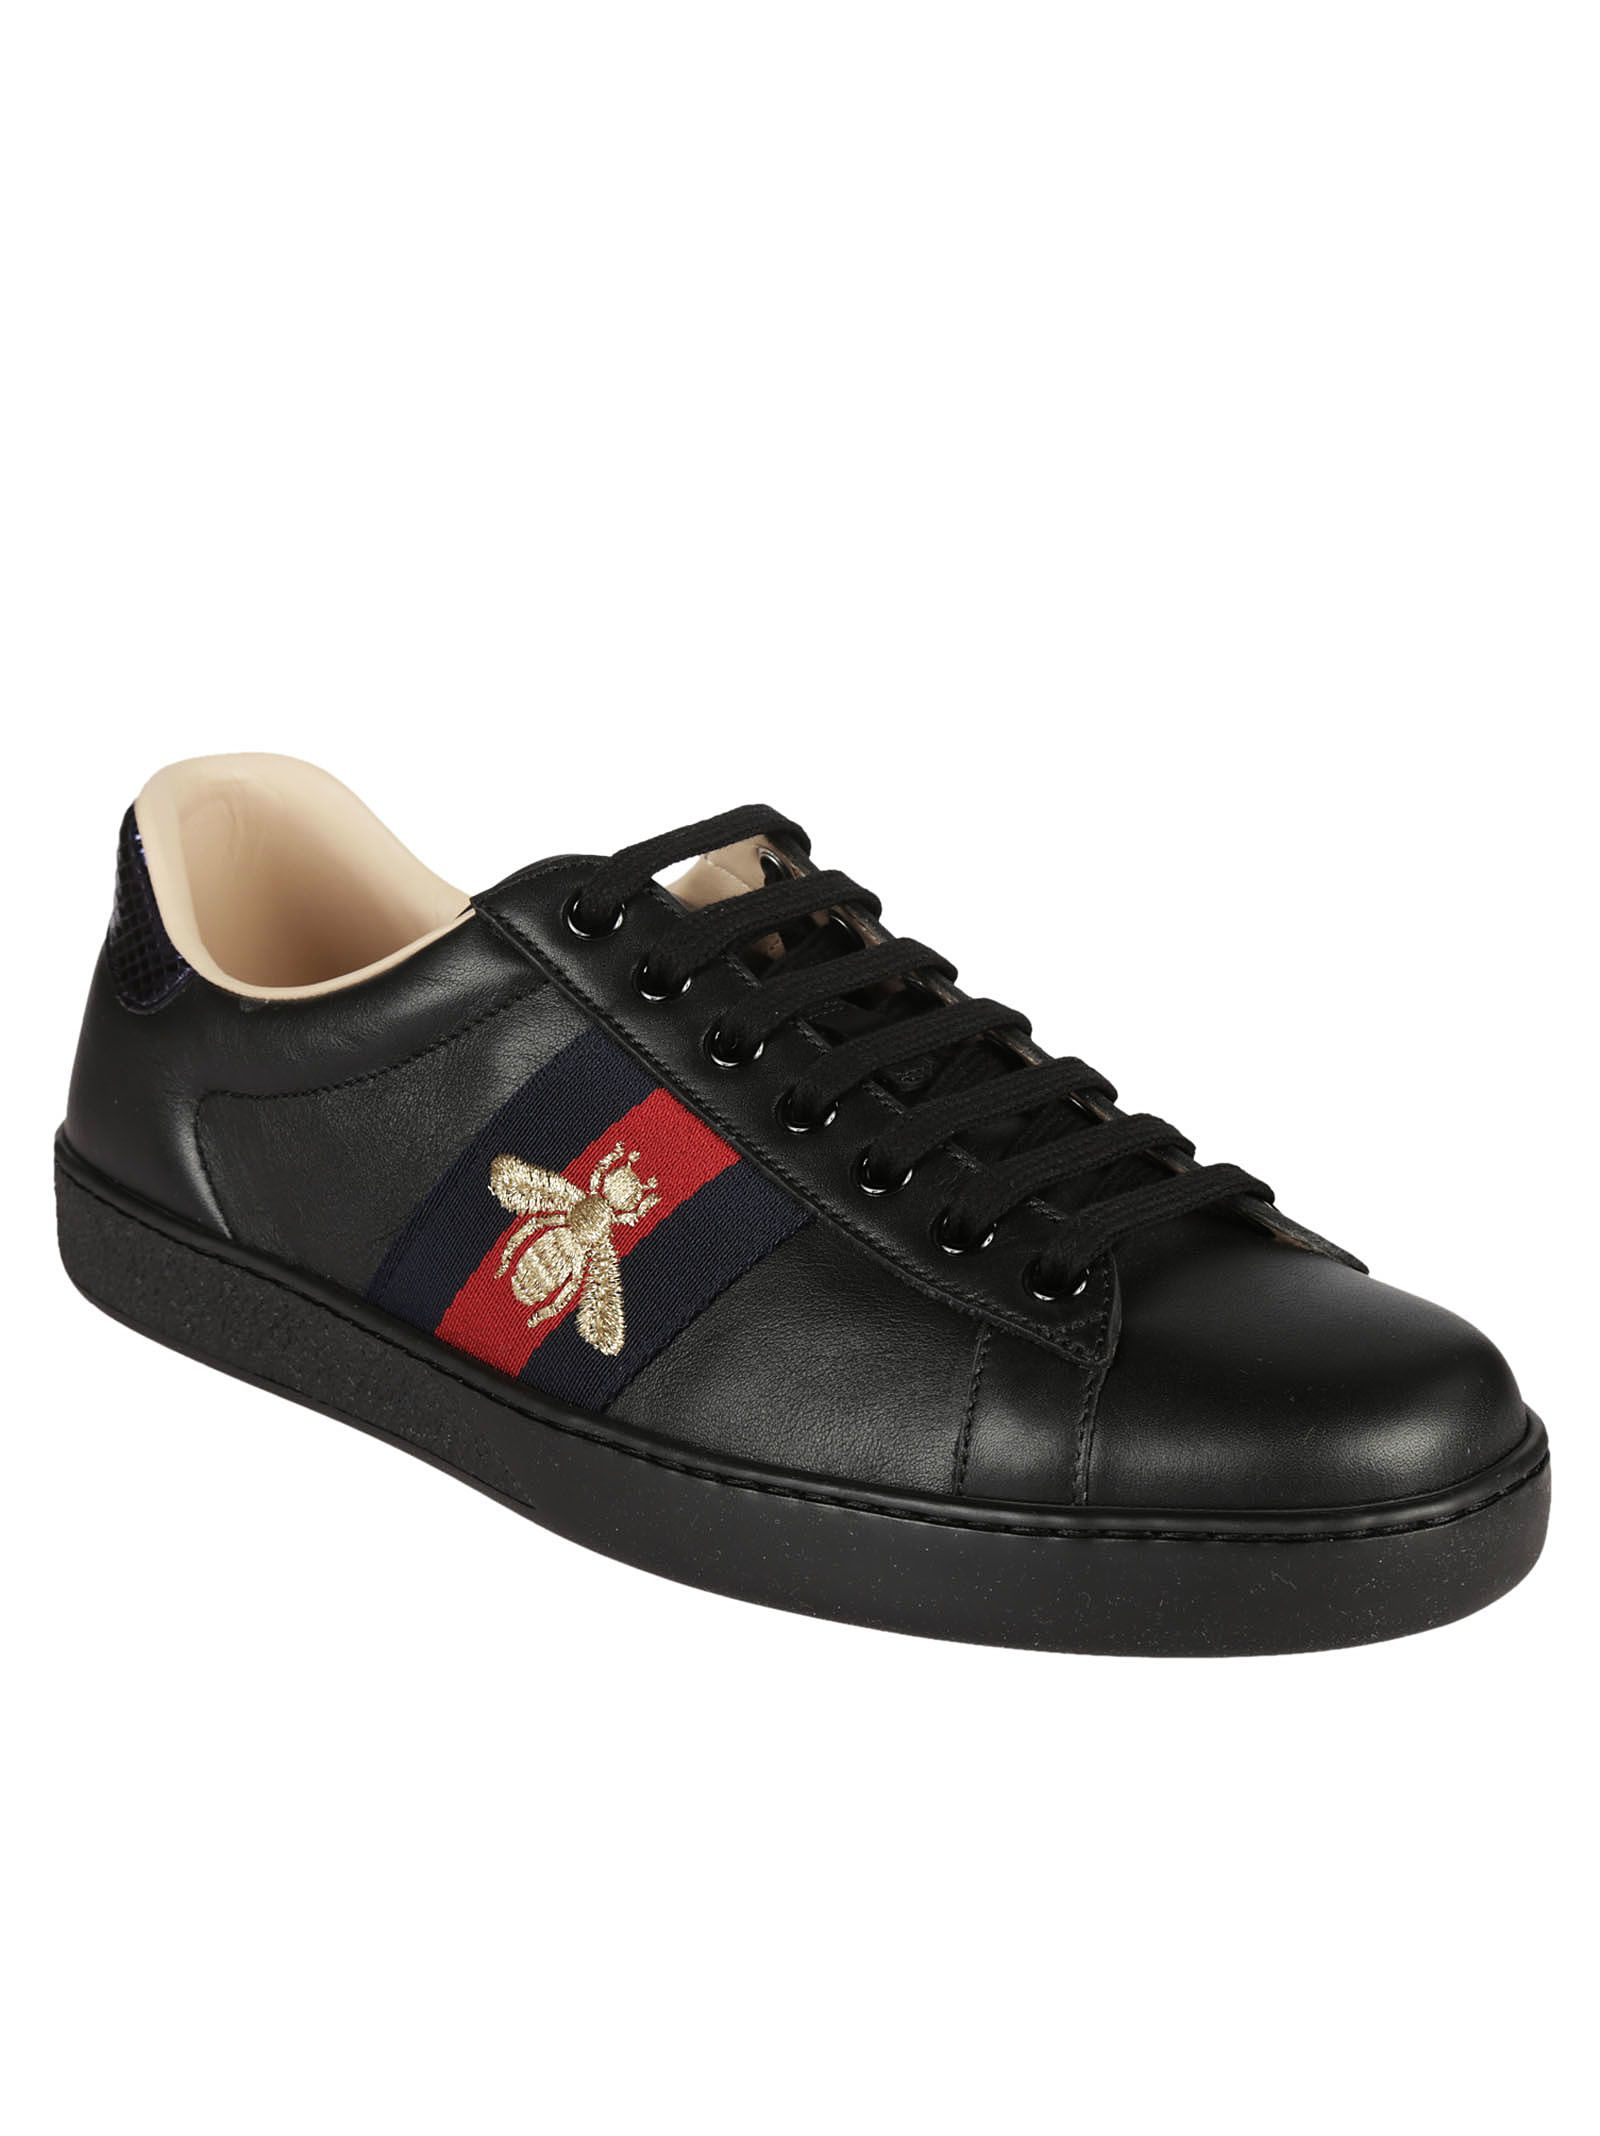 Gucci Shoes New Collection